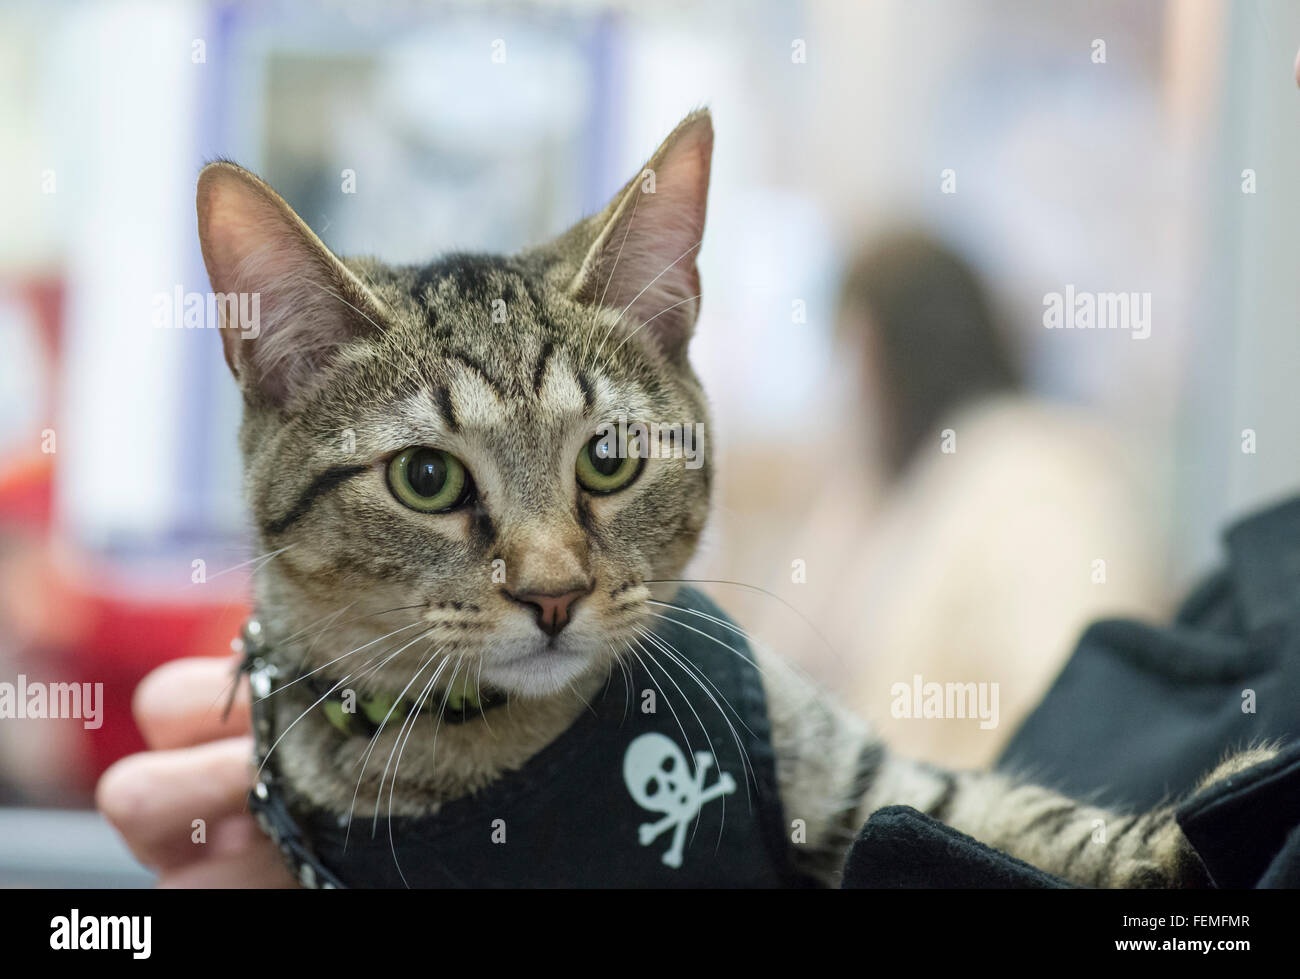 Wantagh, New York, USA. 7th February 2016. Wearing a harness with skull and crossbones, TIGER the tabby cat, one - Stock Image